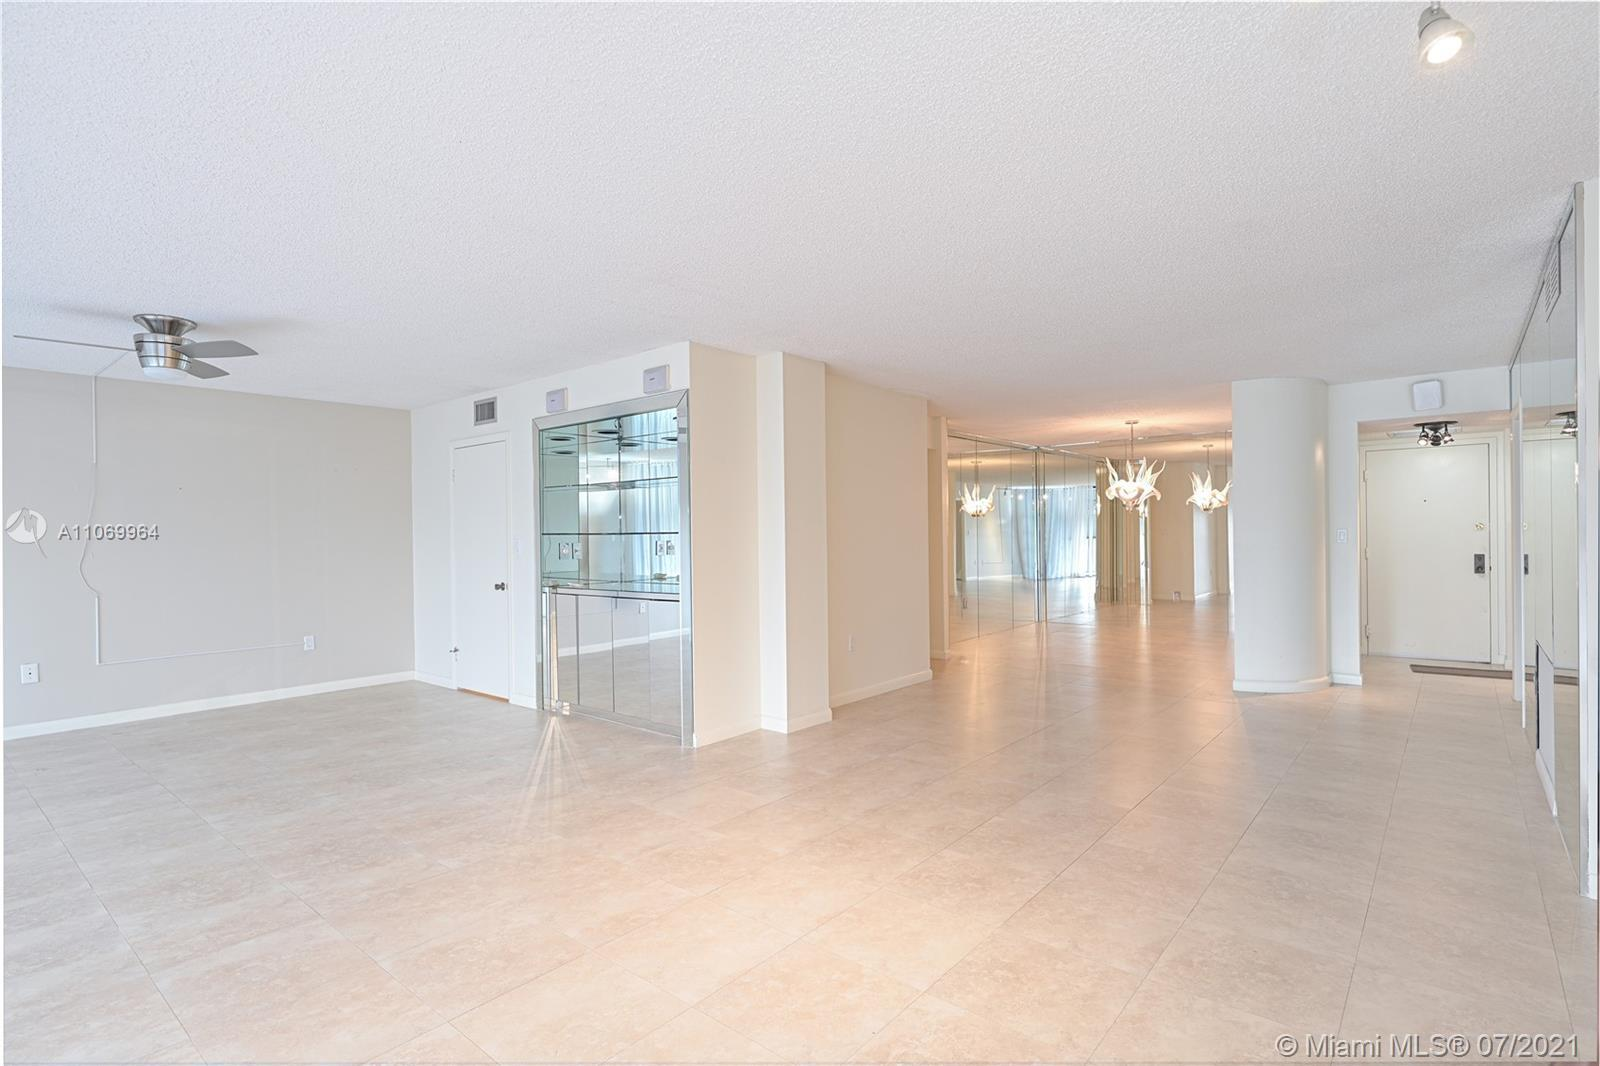 Welcome to your new home! This is a spacious, very well-kept 2 bedroom/ 2.5 bathroom condo unit. It